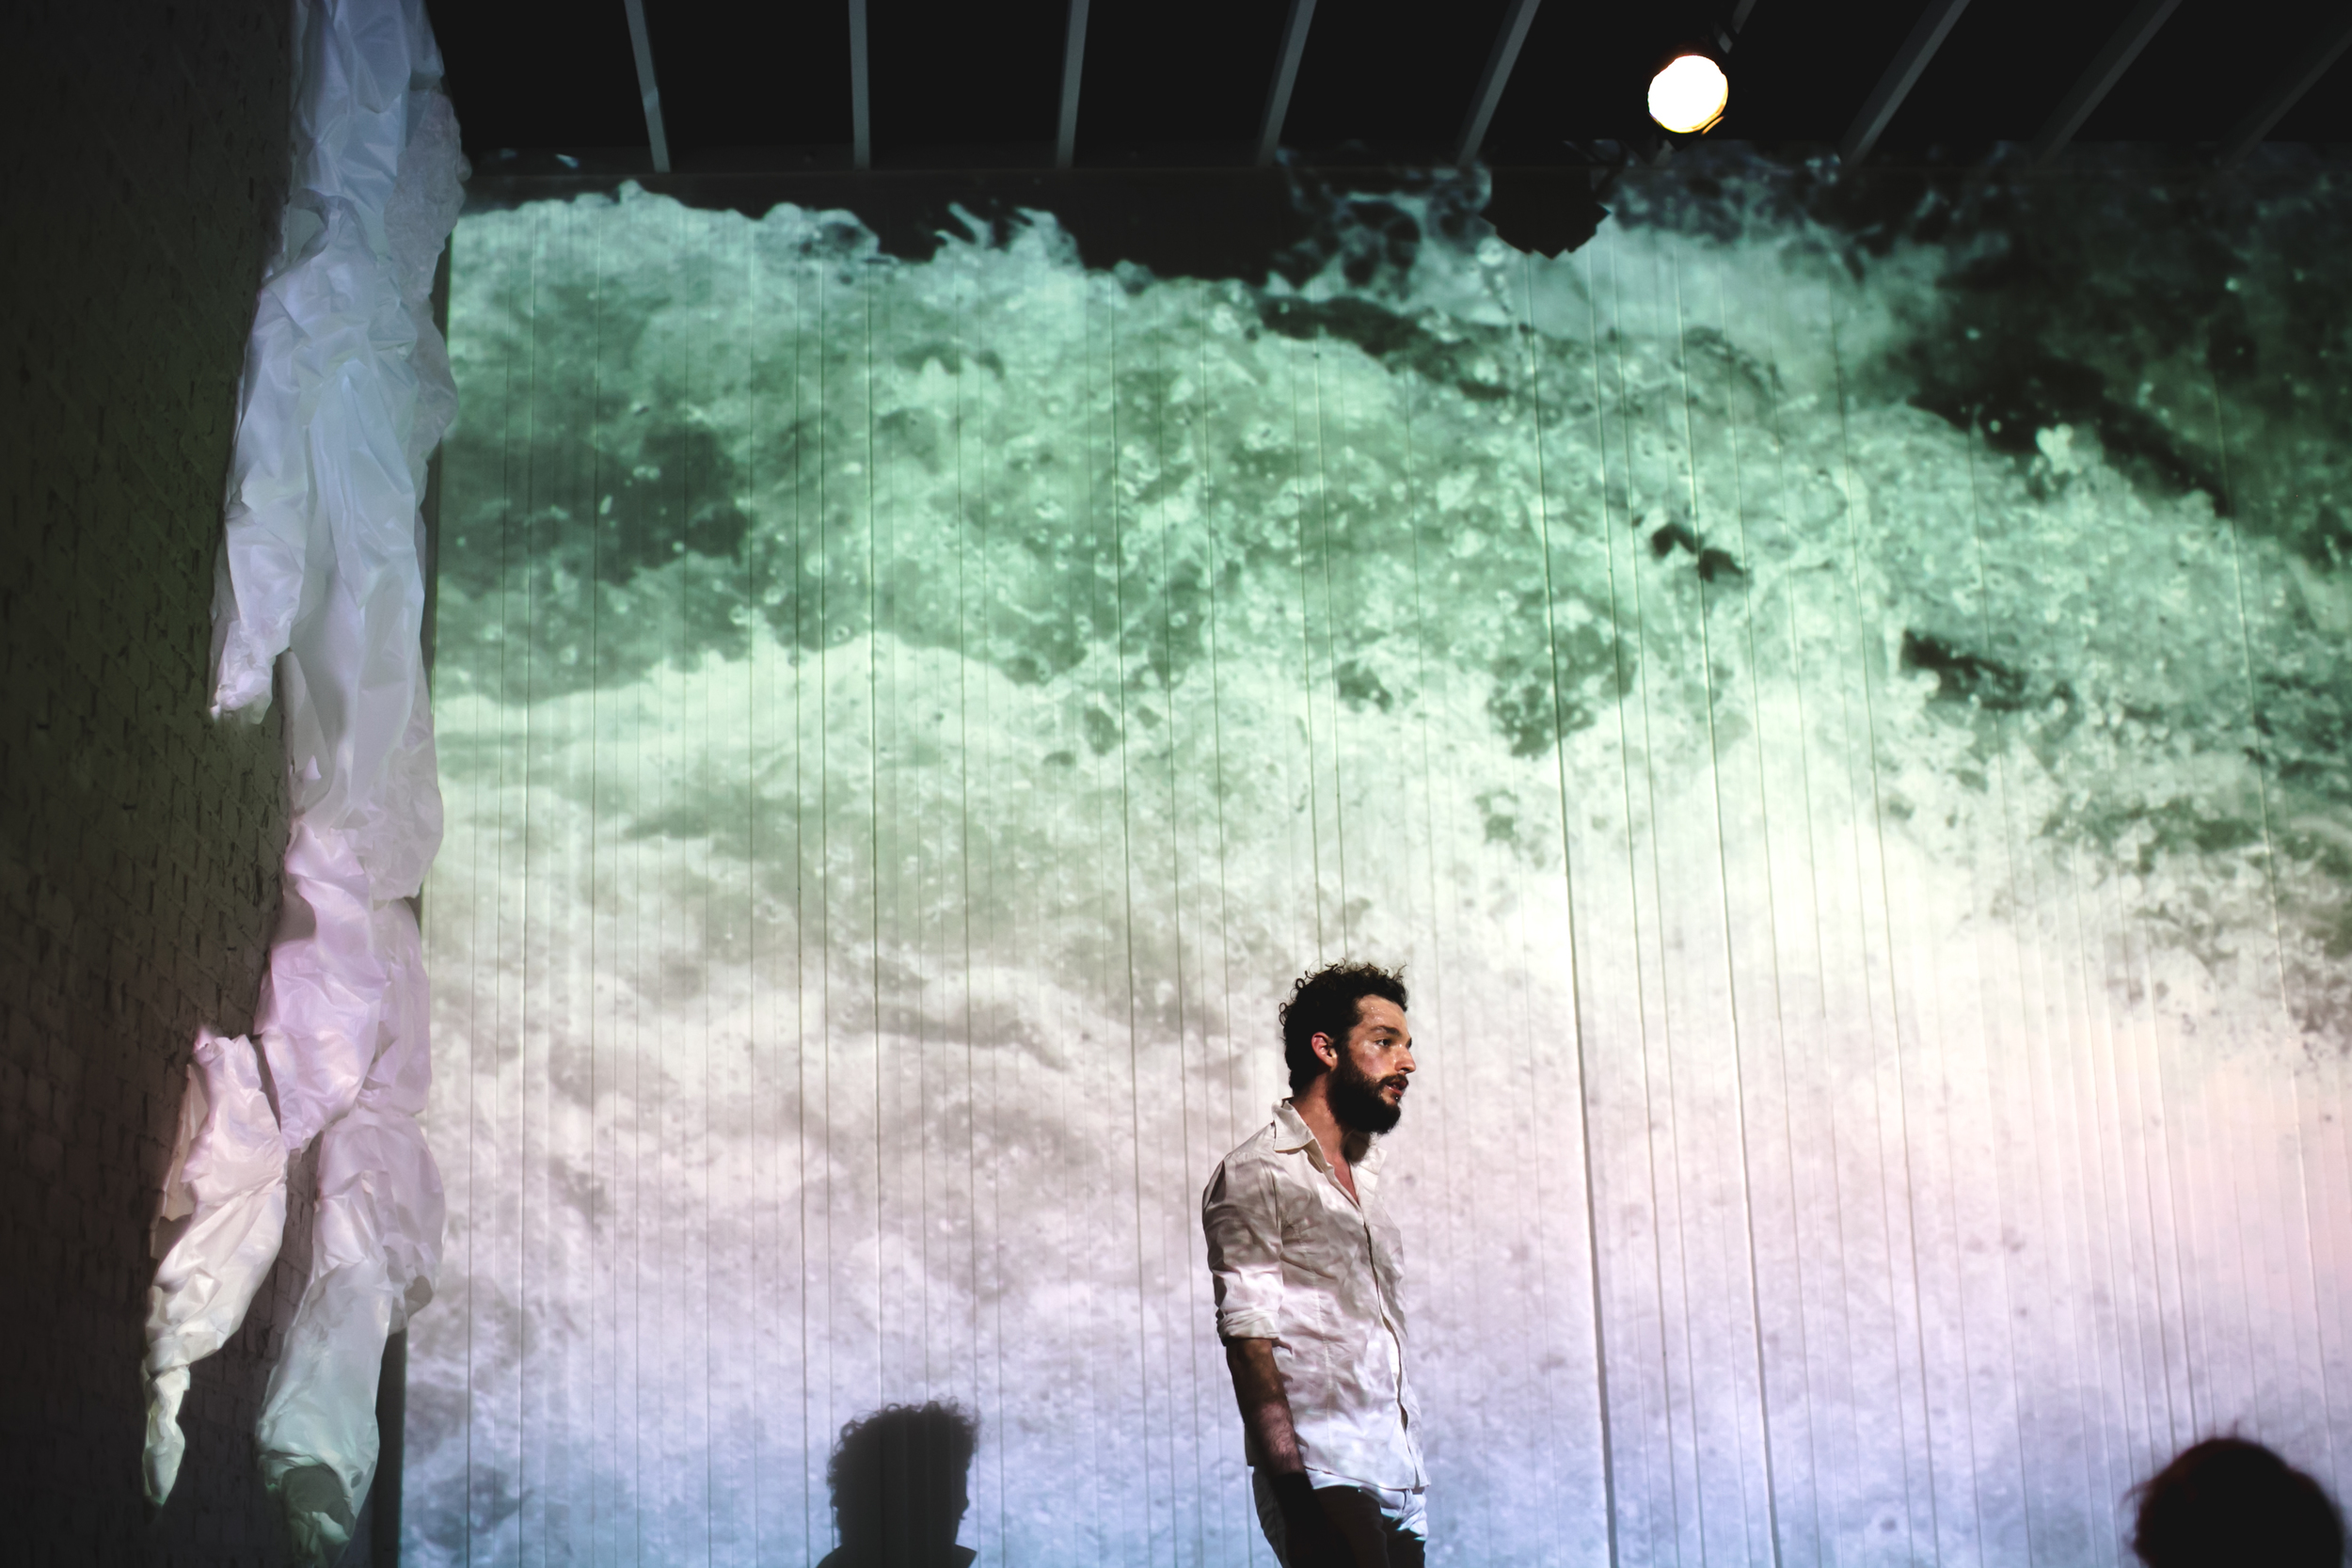 A multimedia performance by LoudHoundMovement, presented by Gowanus Art + Production.  Photo: Chellise Michael.